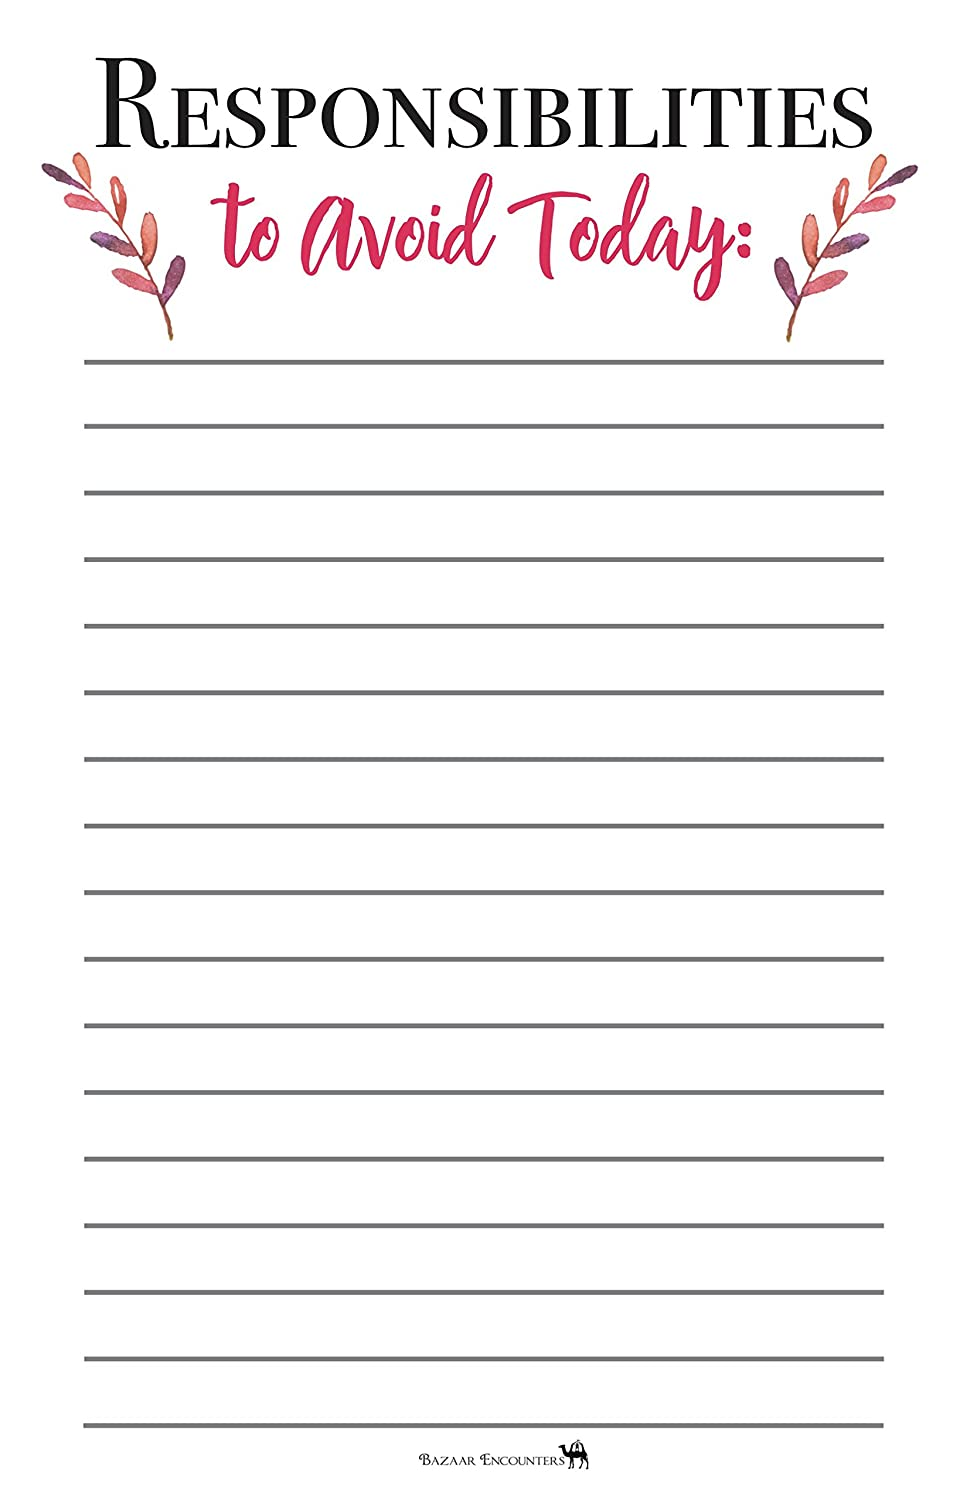 Responsibilities To Avoid Today, Adulting To Do List Magnetic Pad, Graduation Gift Idea, Grocery List for Fridge, Funny Notepad with Magnet, 50 Sheets, 5.5 x 8.5, Dorm, Office Gift! Made in USA